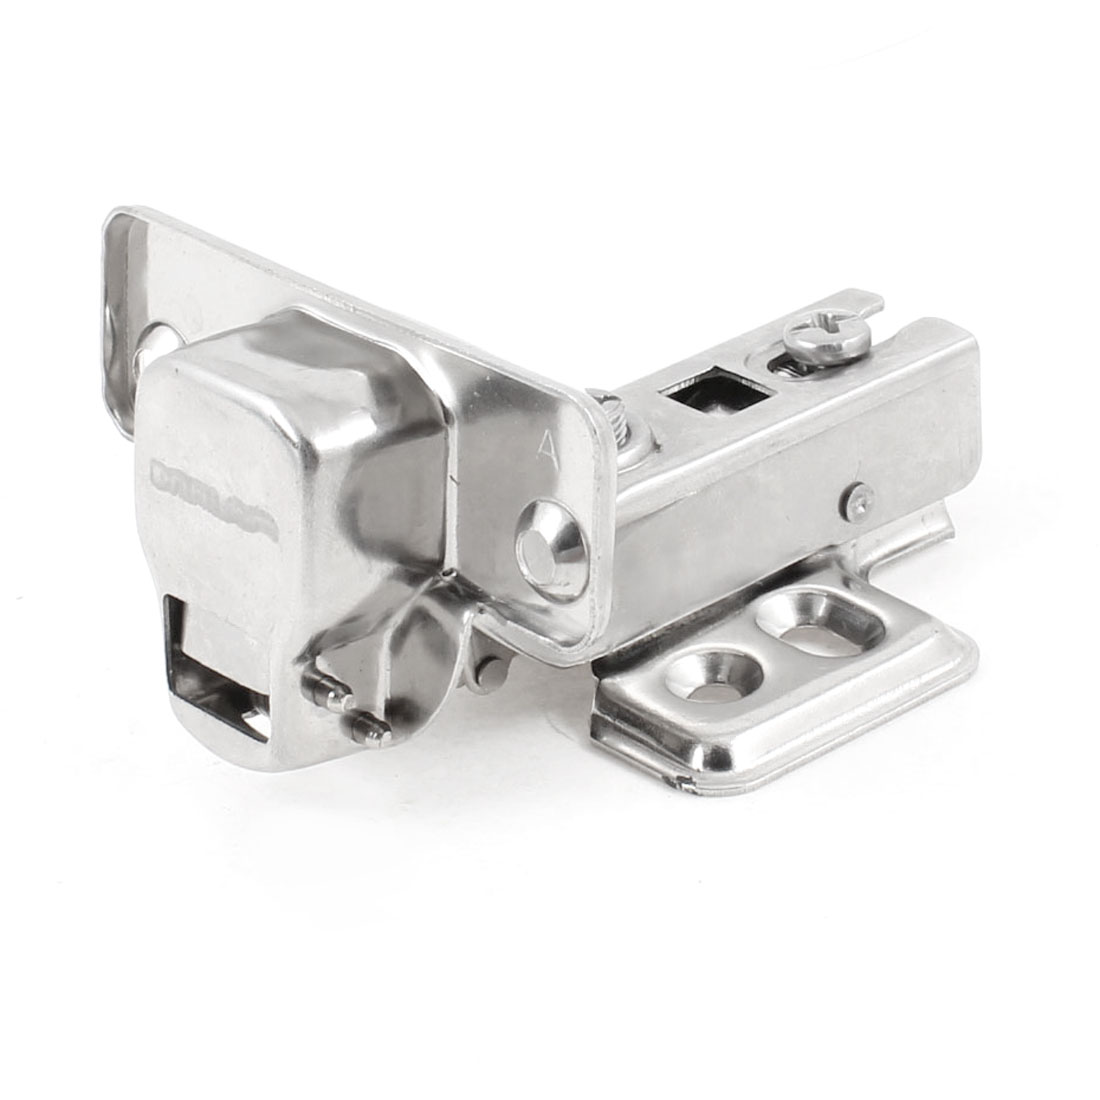 Furniture Fittings Silver Tone Metal Buffer Concealed Cabinet Door Hinge